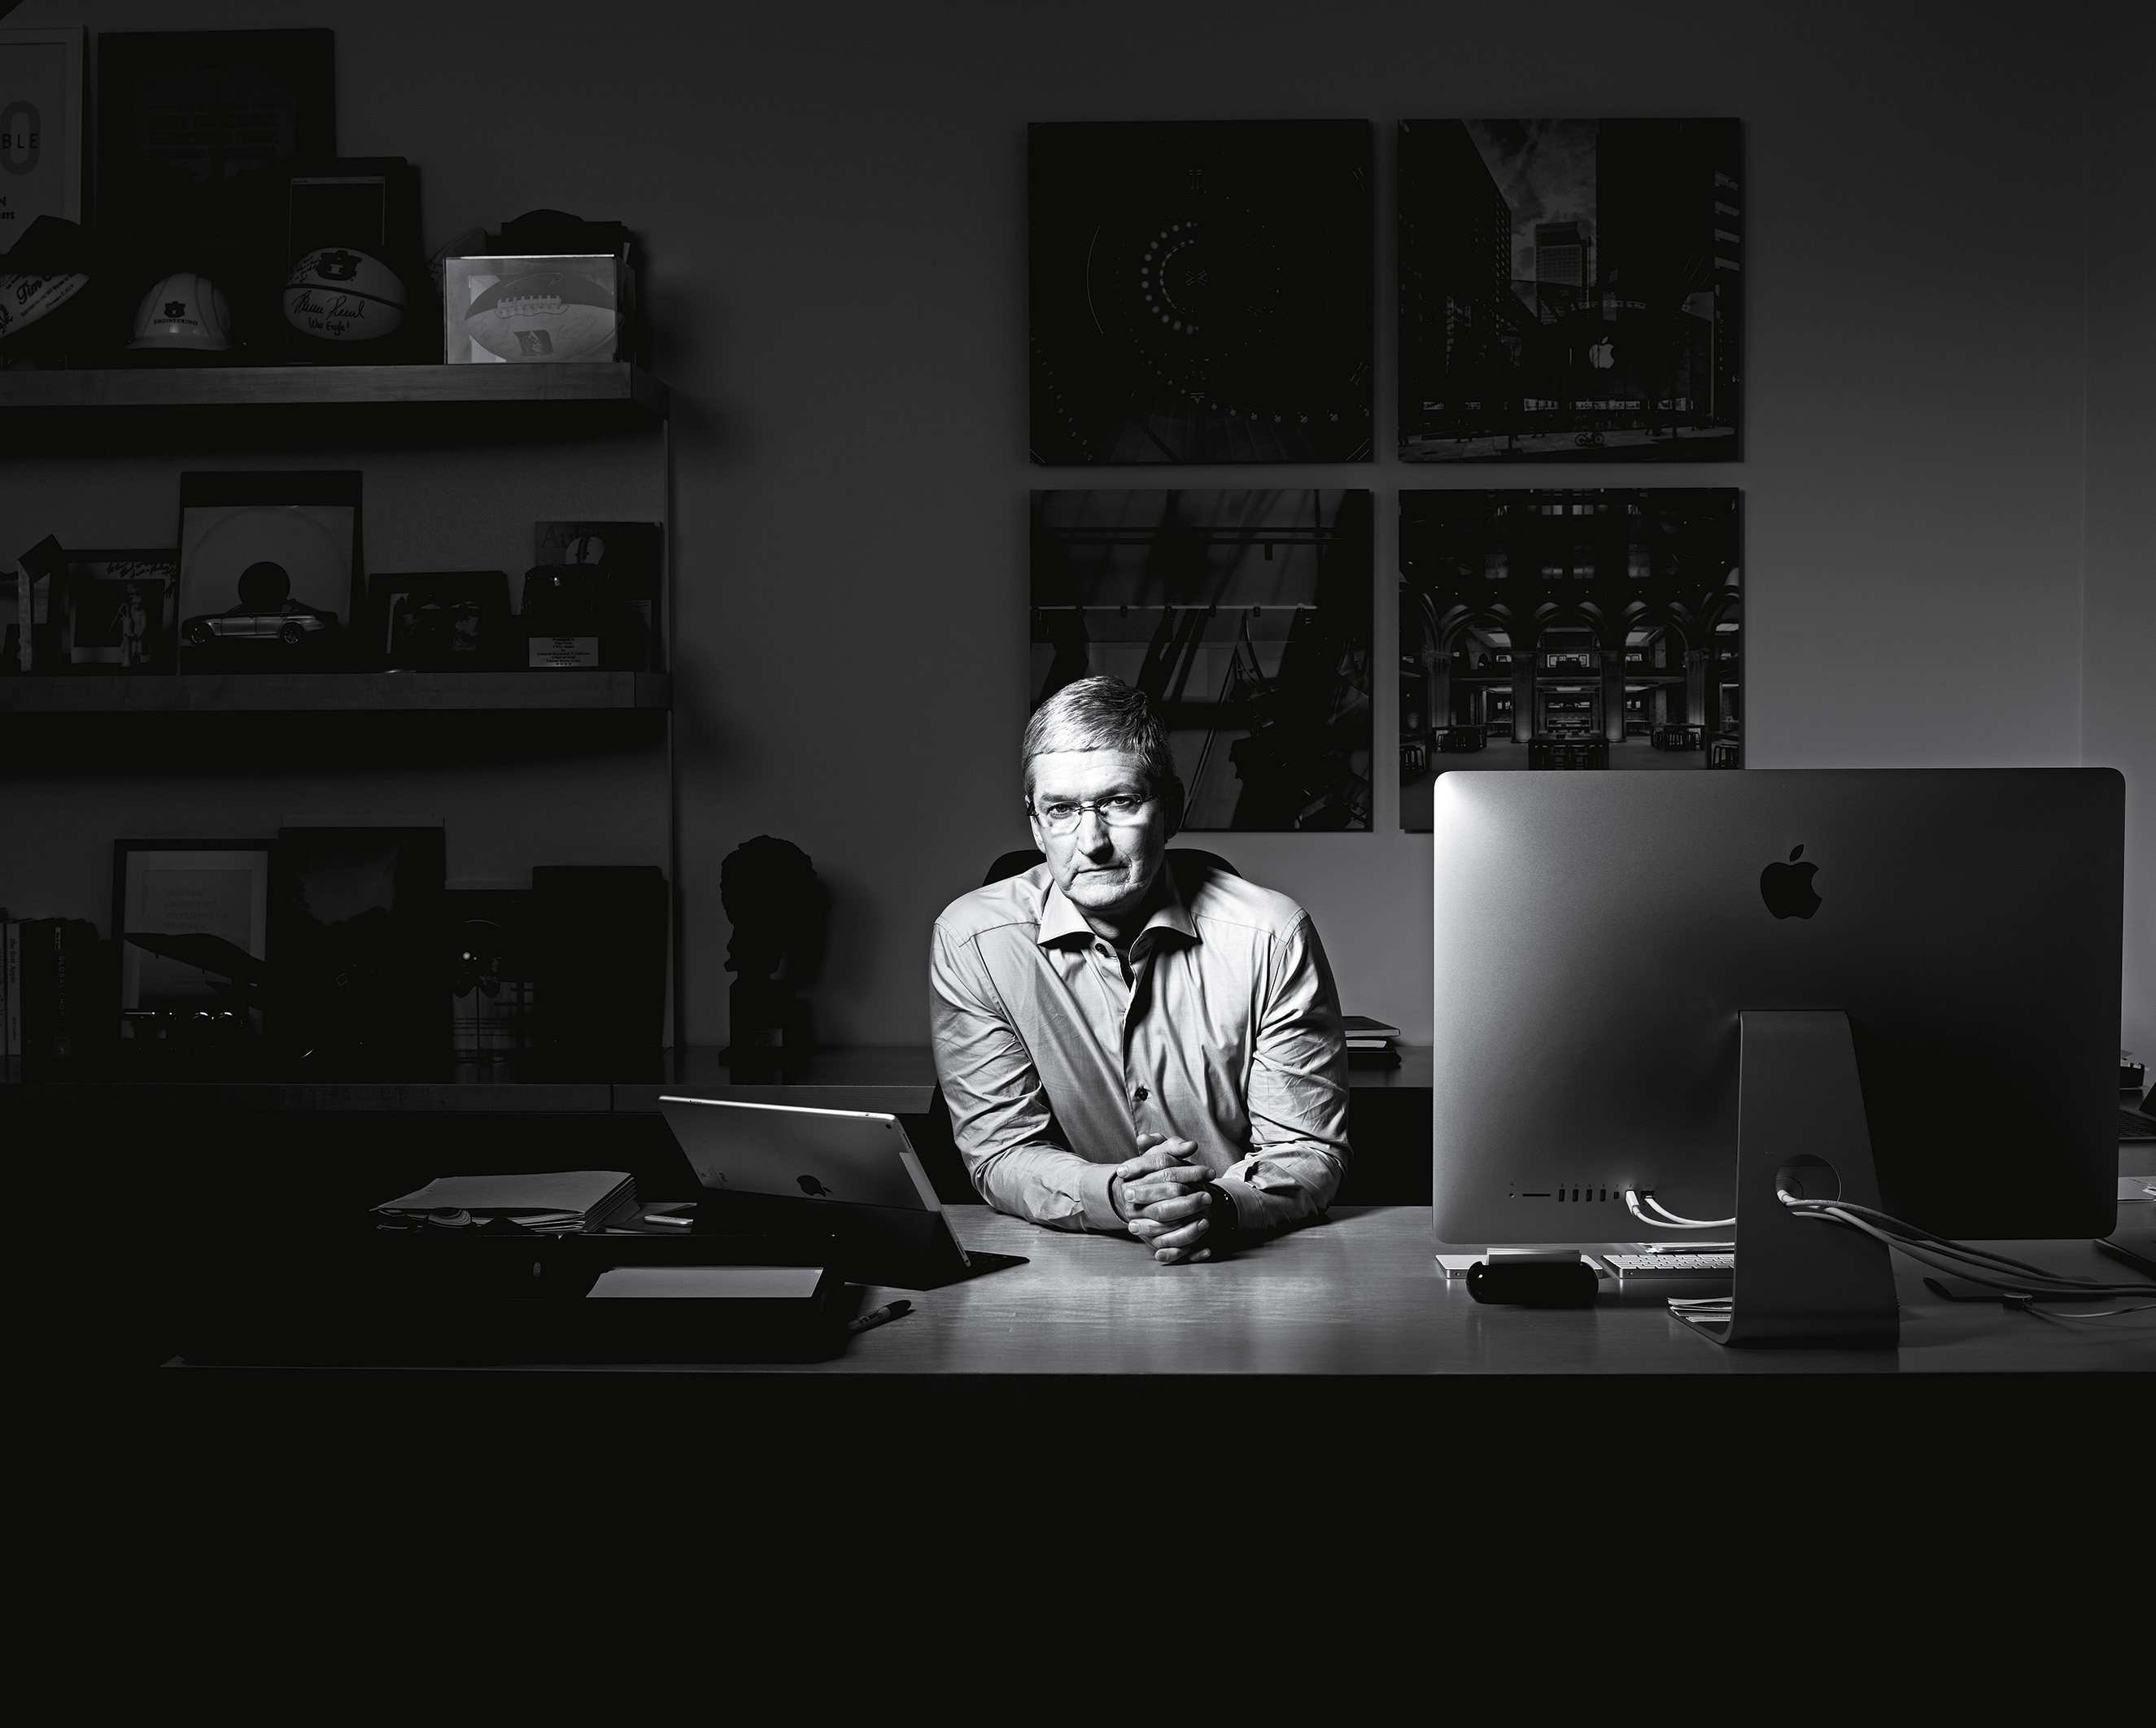 Tim Cook photographed in his office at Apple headquarters in Cupertino, California on March 14, 2016.From  Behind TIME's Cover Shoot with Apple's Tim Cook.